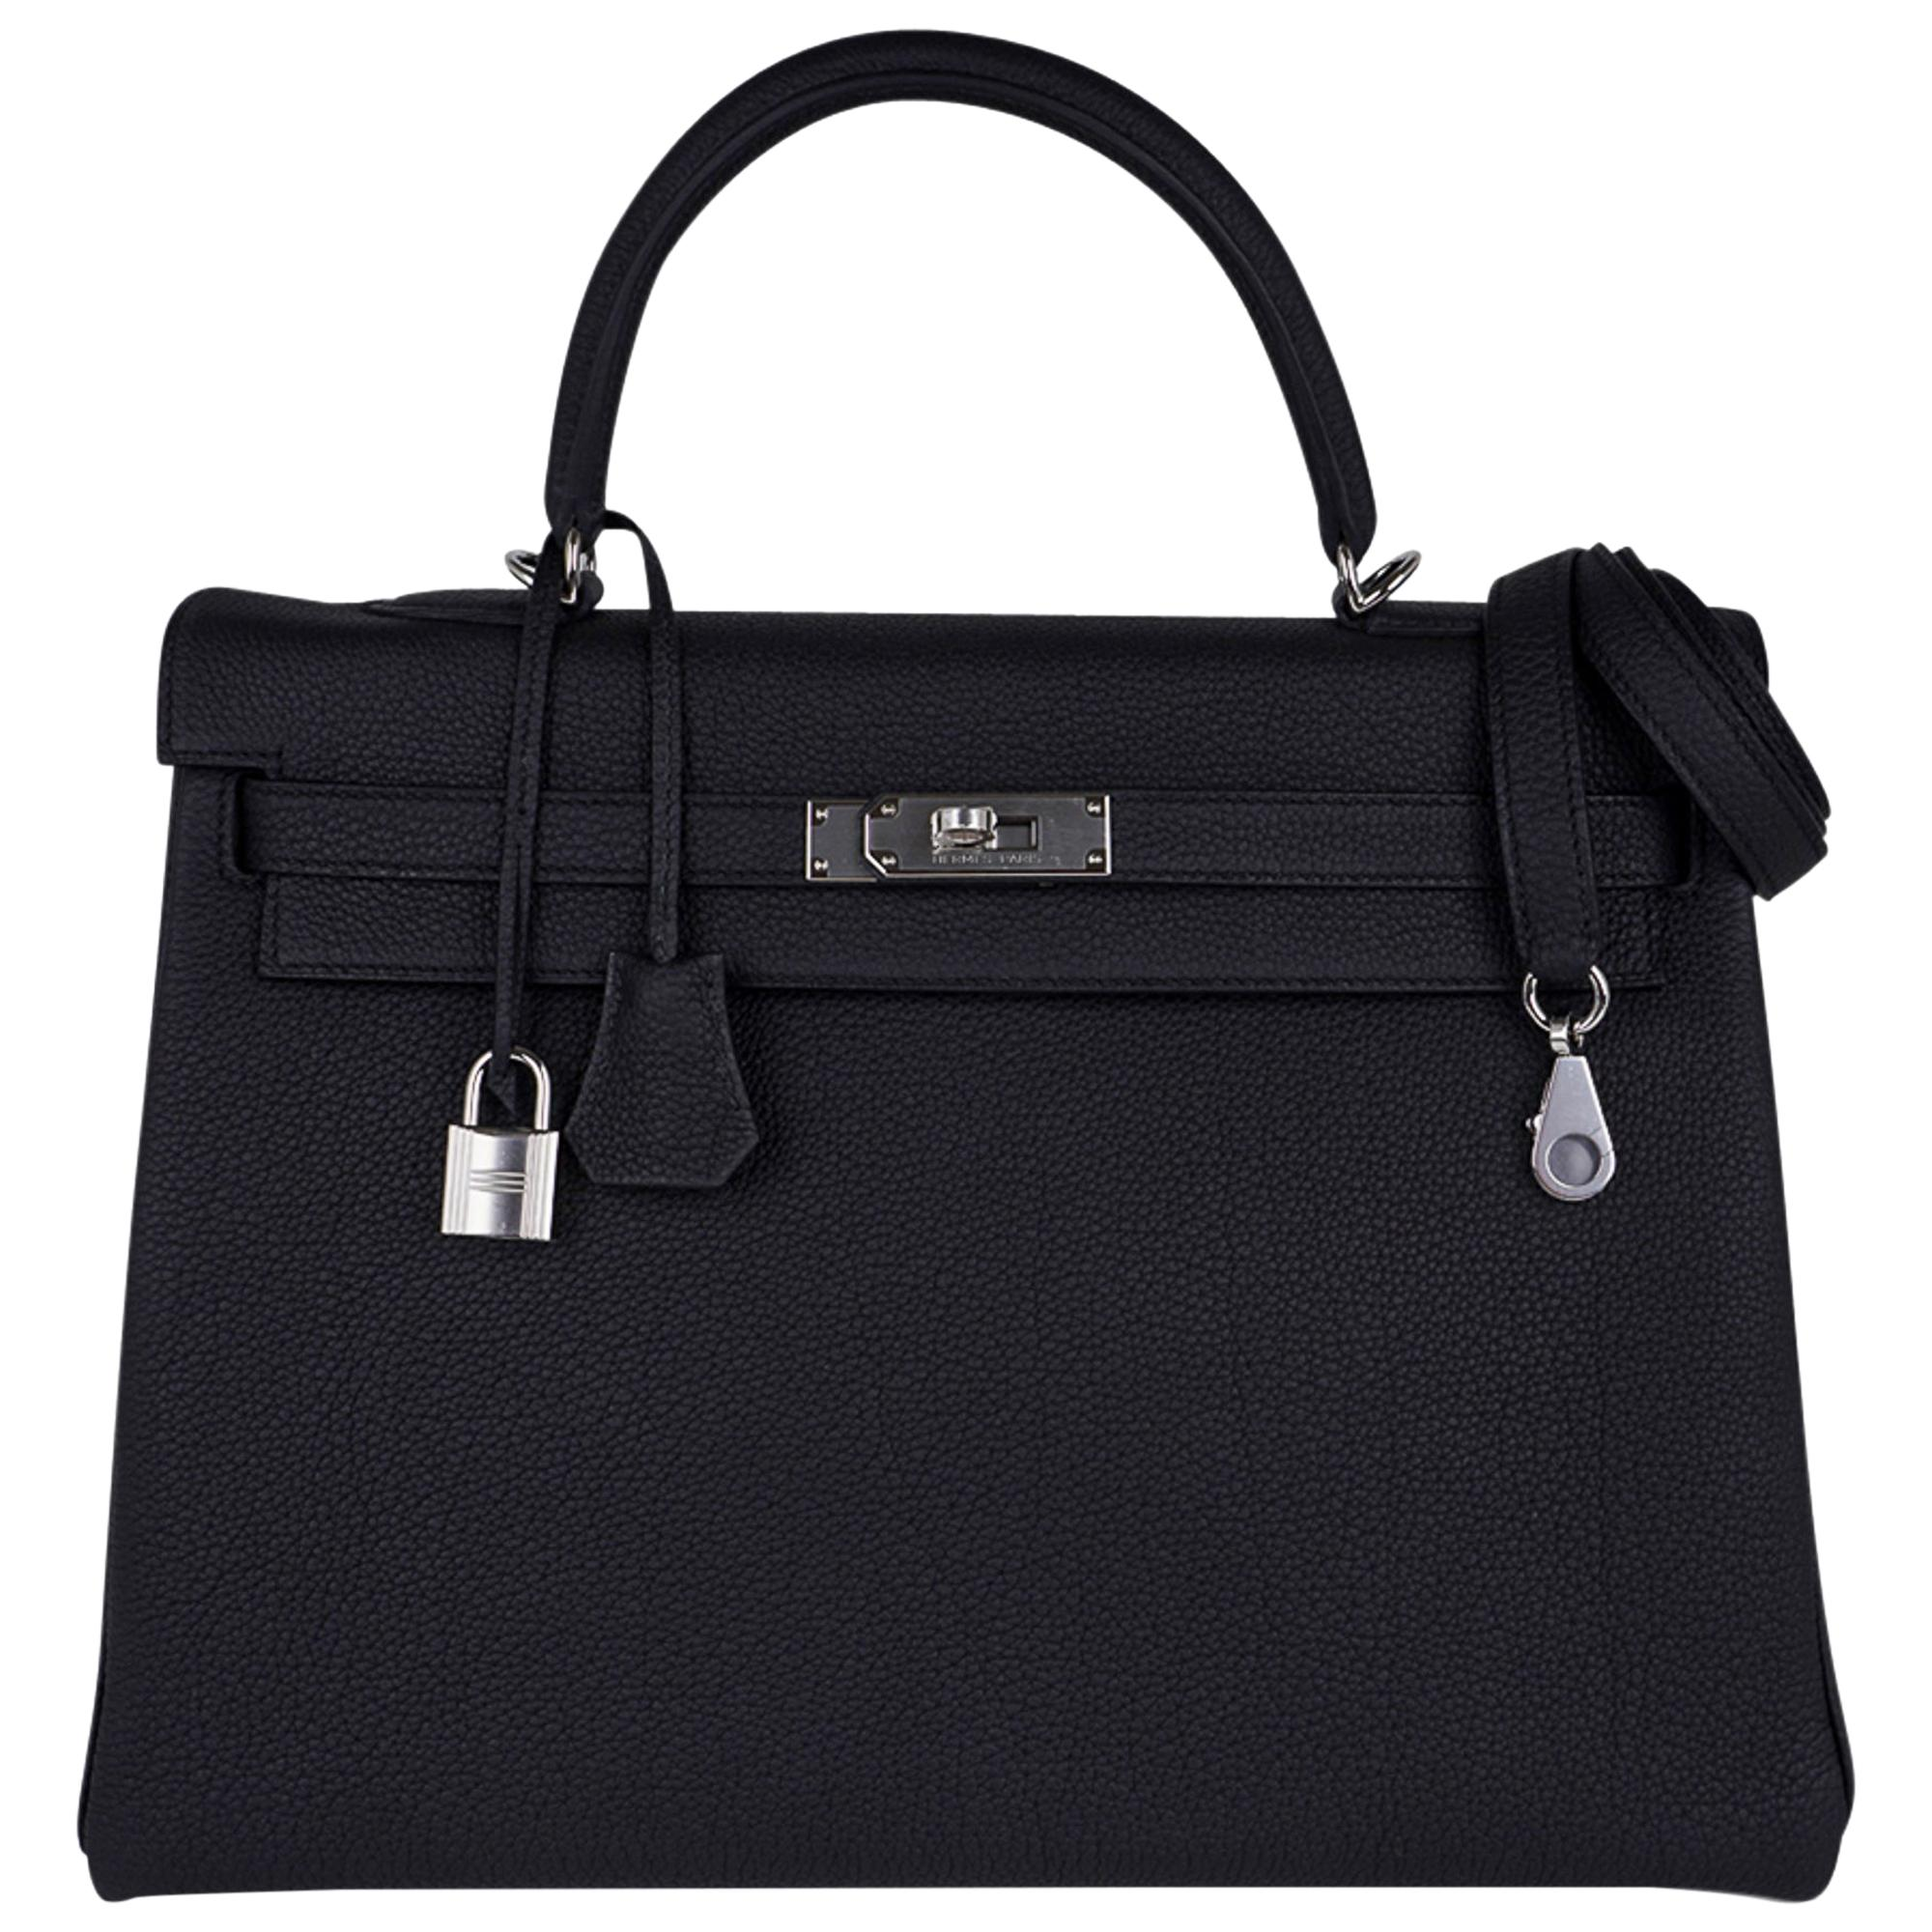 Hermes Kelly 35 Bag Black Retourne Togo Palladium Hardware New